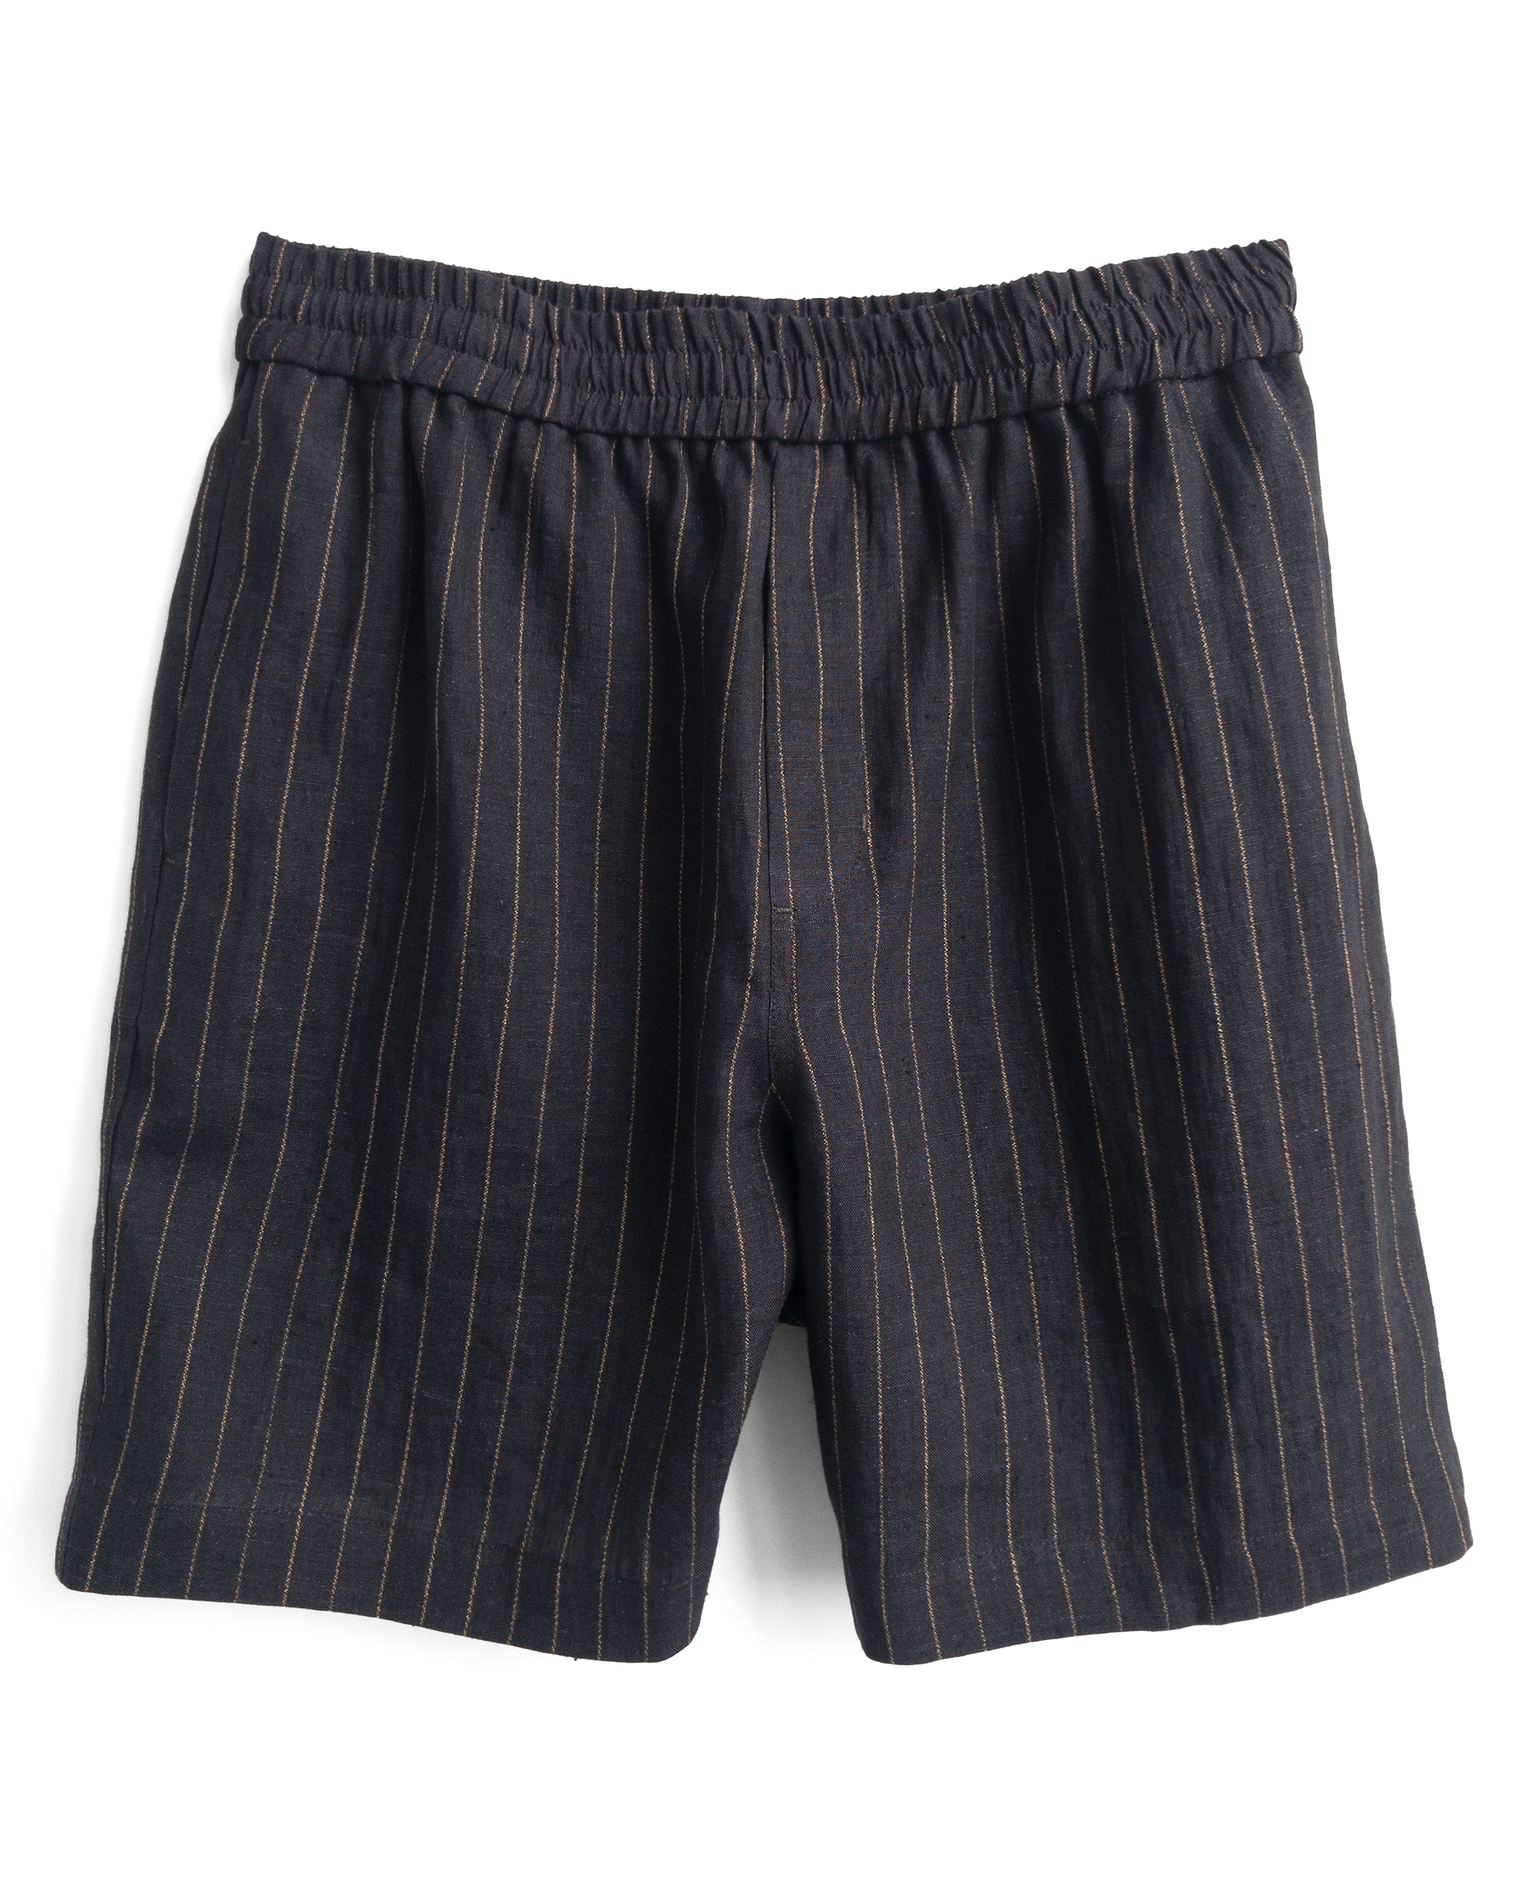 Fanmail - Indigo pinstripe sport short in linen with organic cotton pocketing.